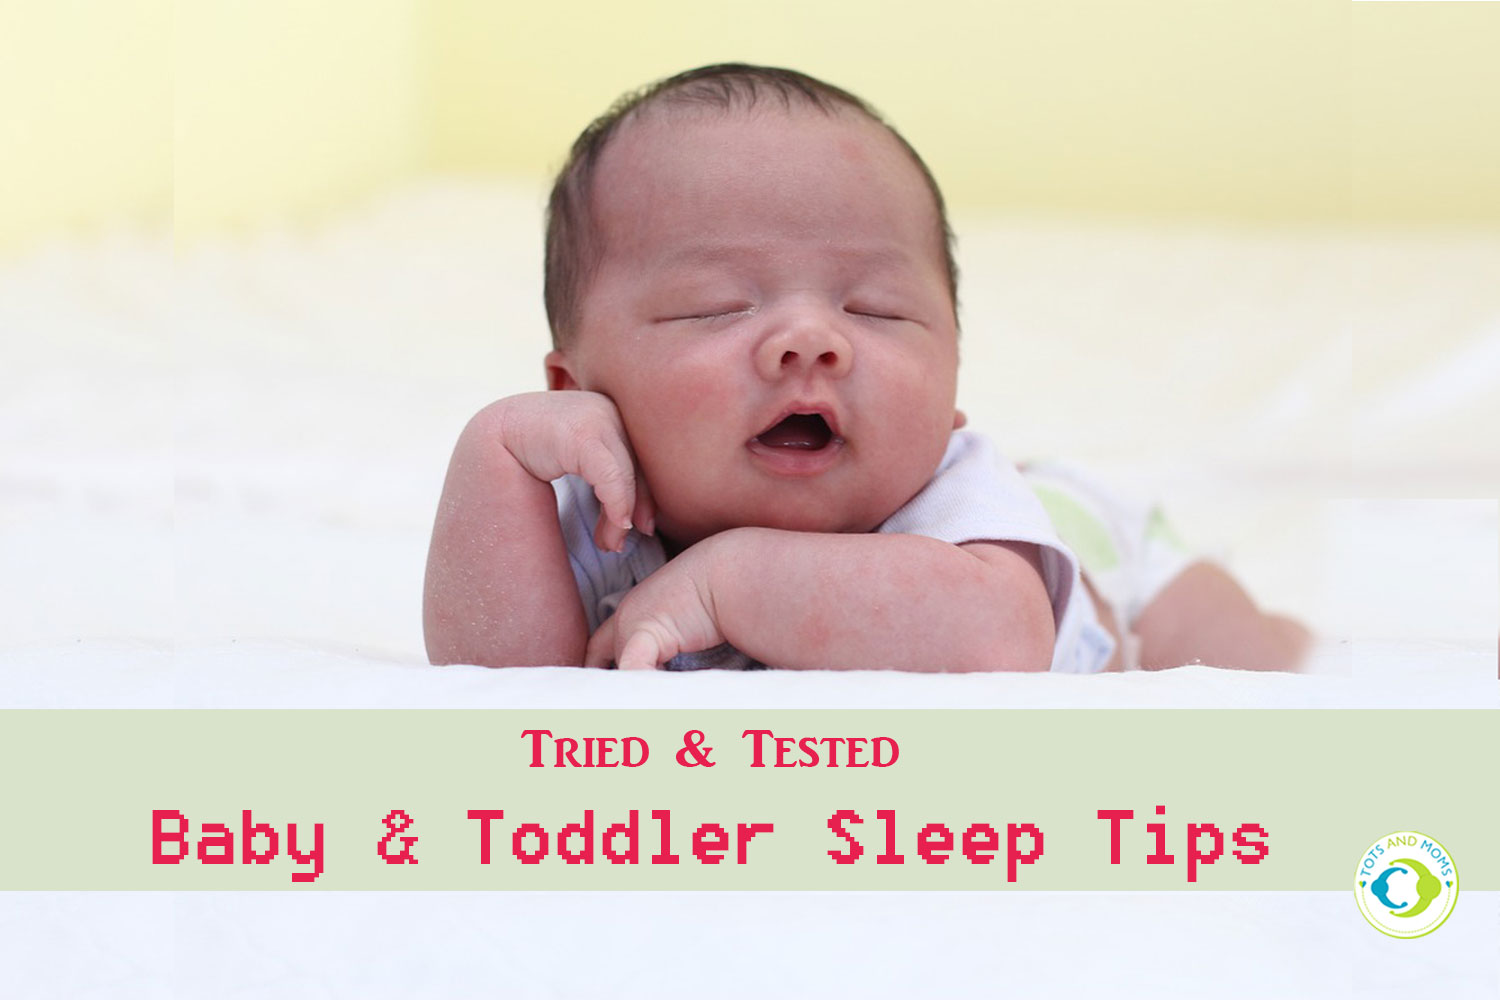 Indian Baby and Toddler Sleep Tips - Tried & Tested